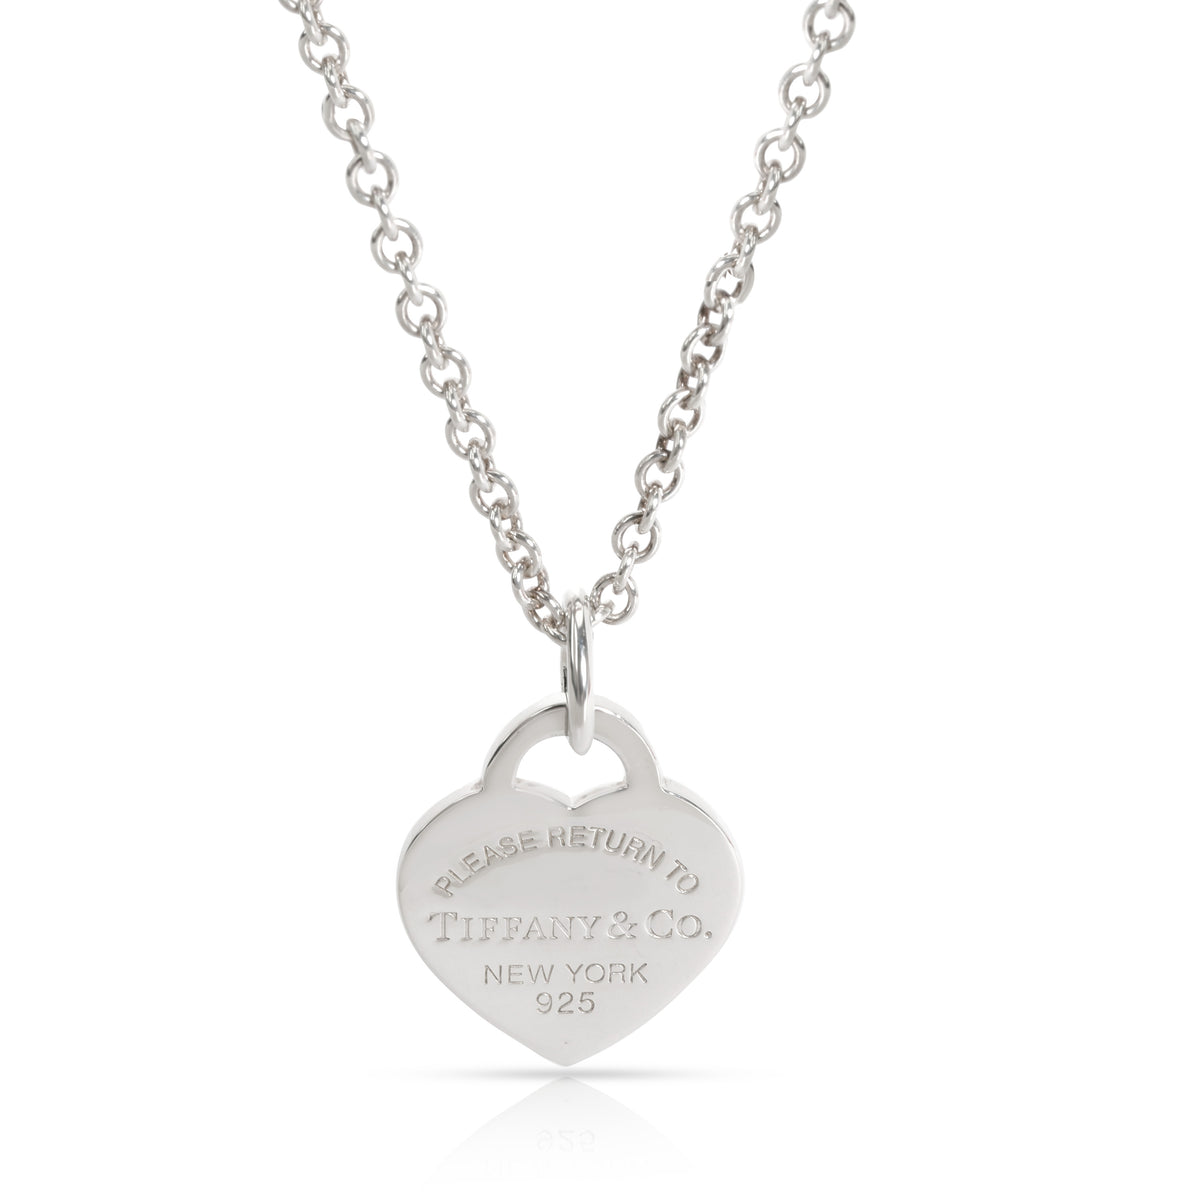 Tiffany & Co. Return to Tiffany Heart Tag Pendant in  Sterling Silver